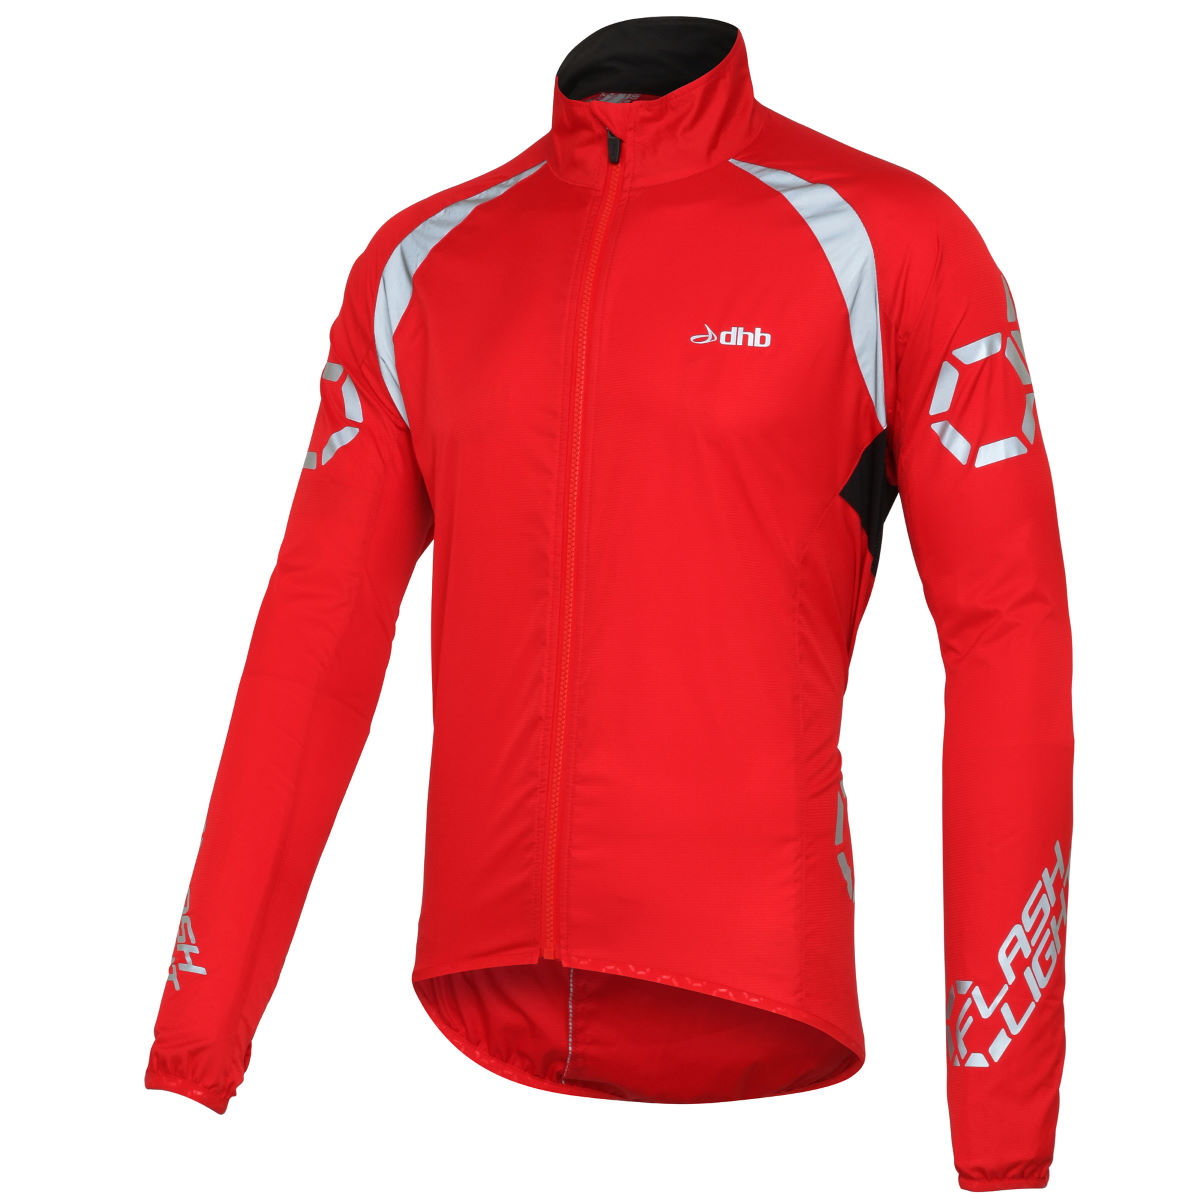 Veste dhb Flashlight (coupe-vent) - S Rouge Coupe-vents vélo